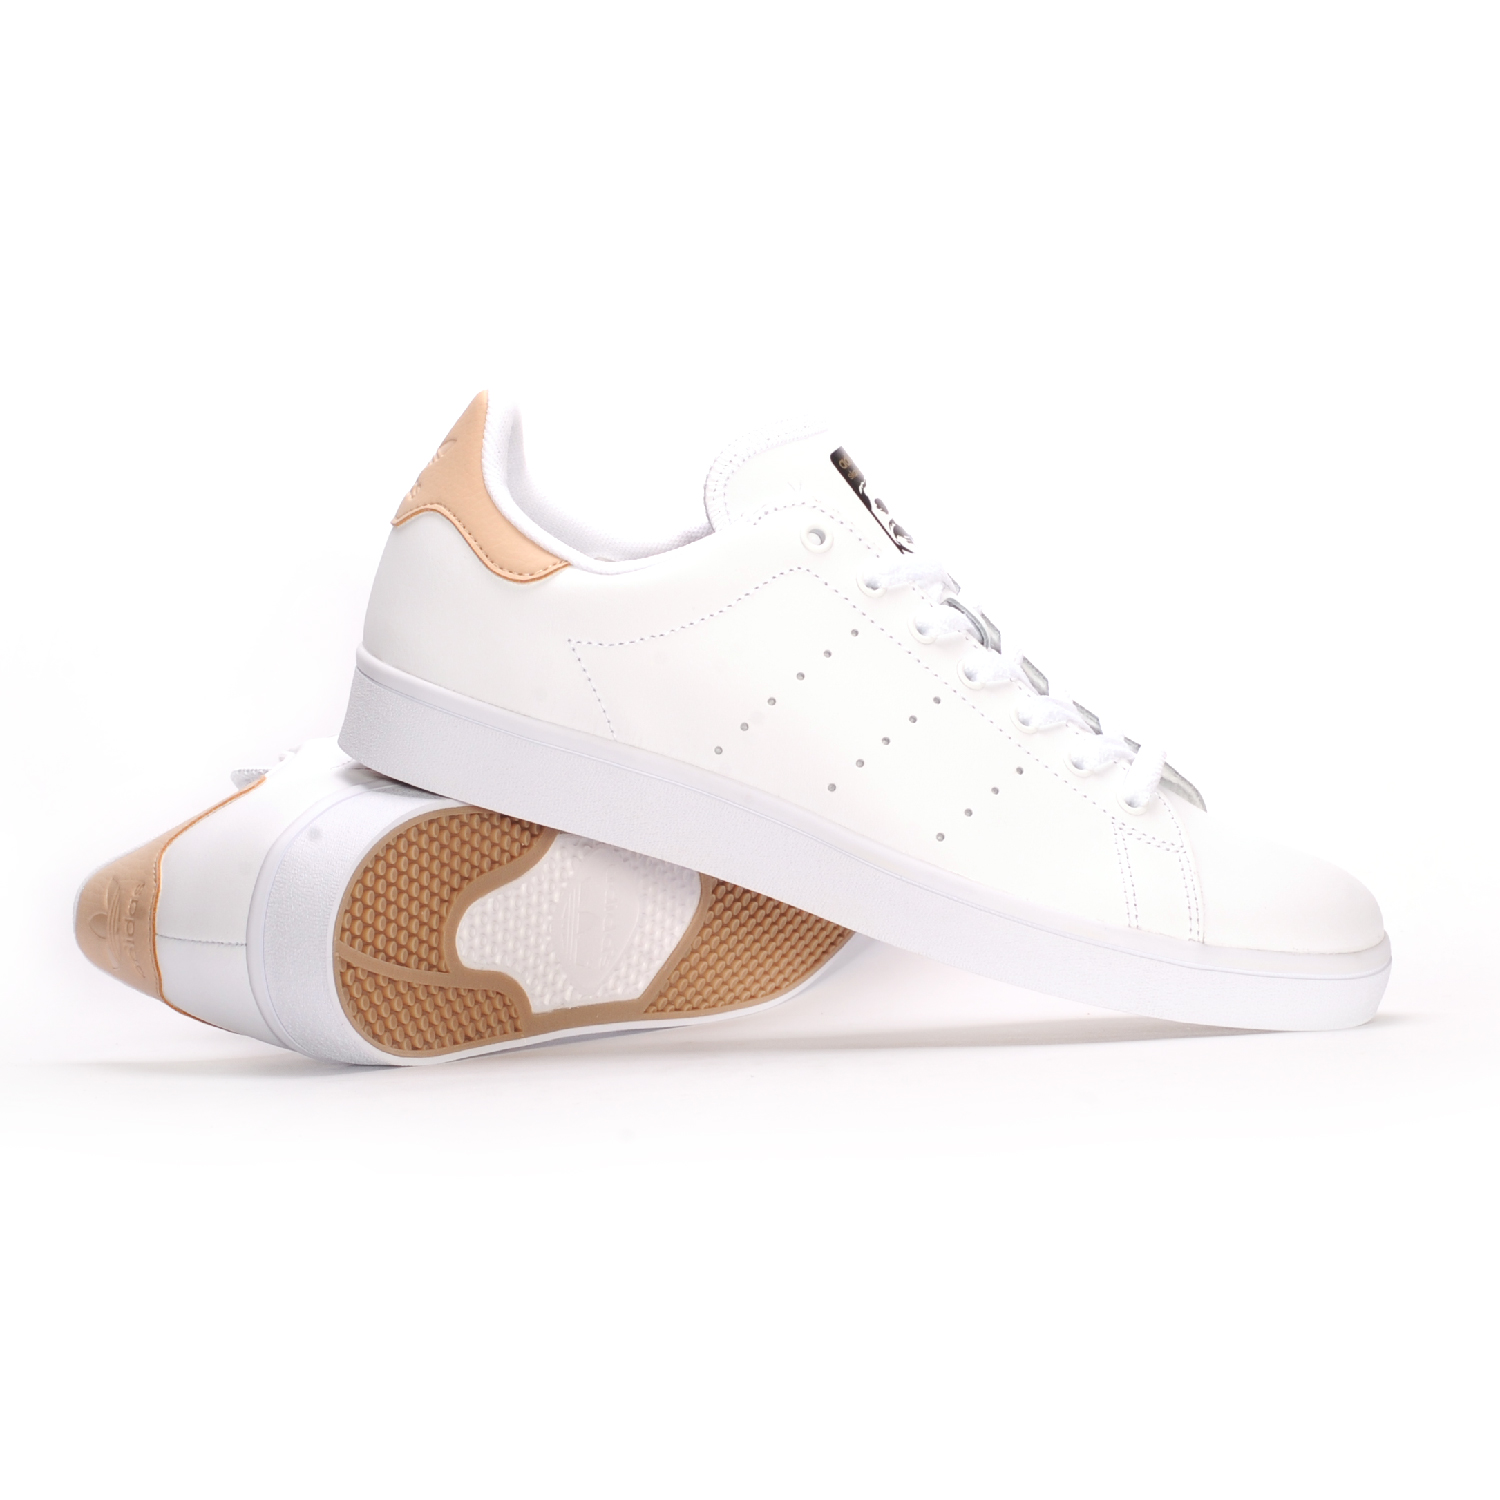 Adidas Stan Smith Vulc White St Pale Nude Gold Metallic Men s